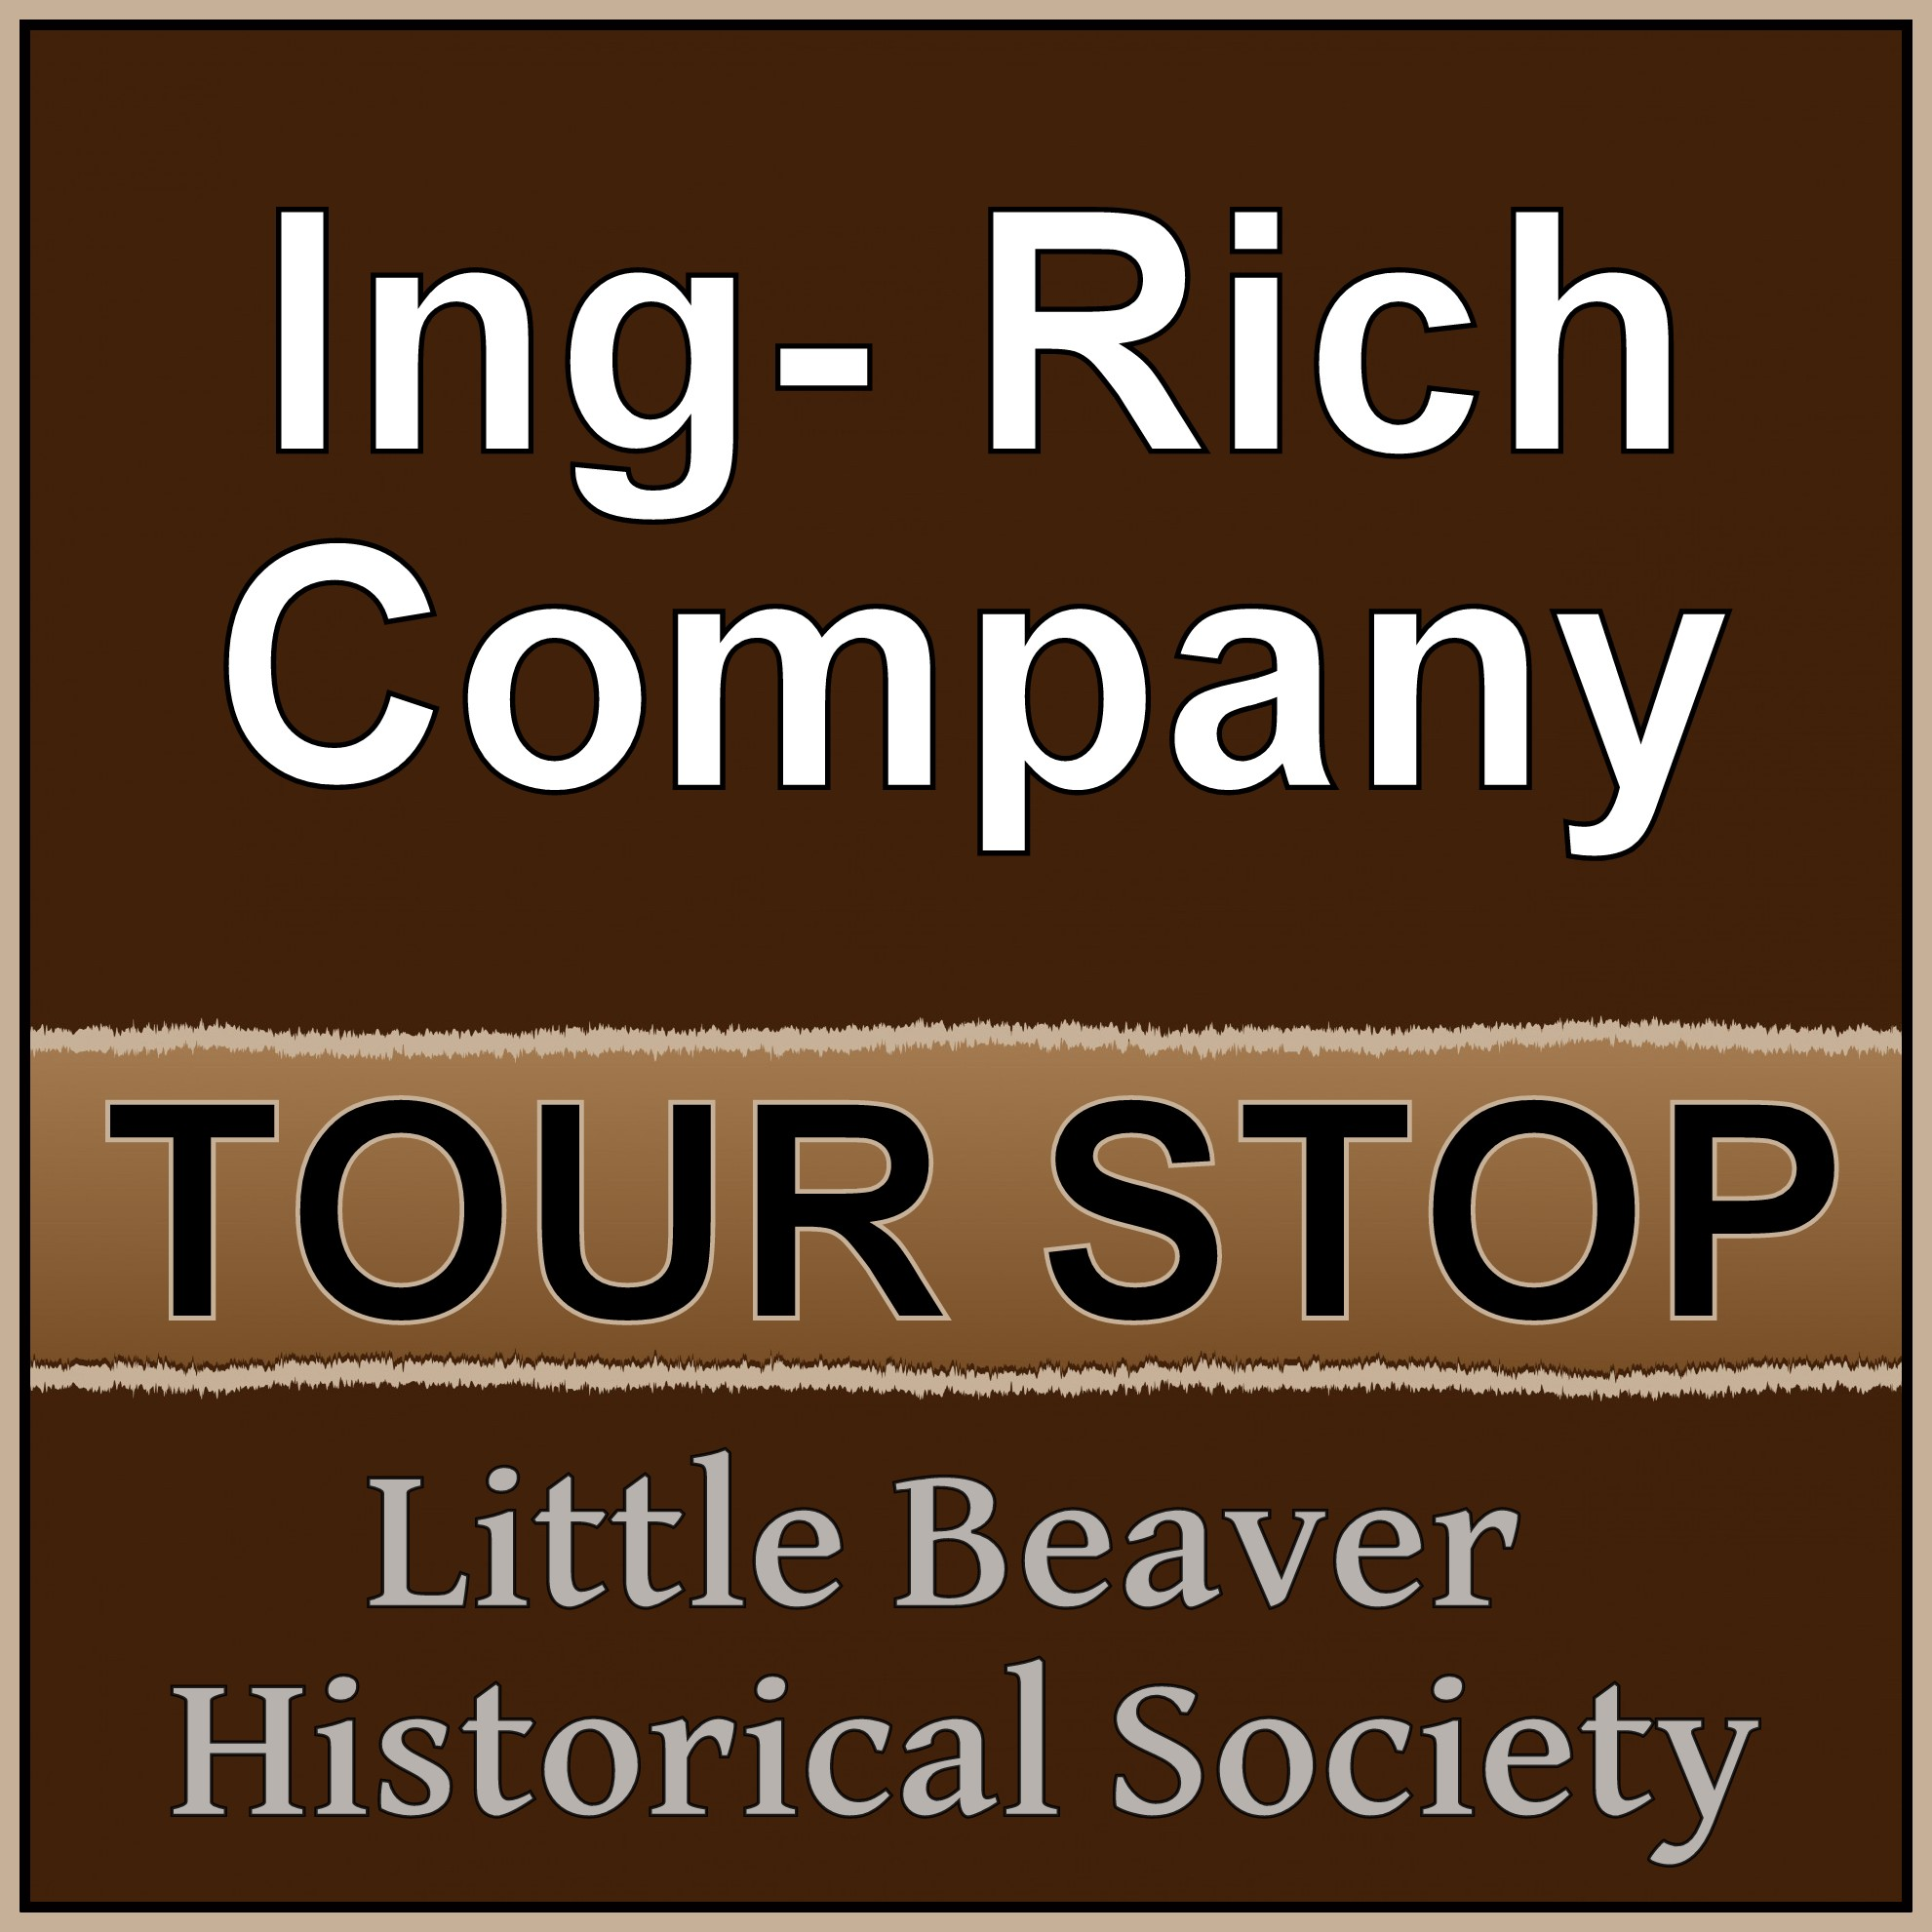 LBHS Tour Stop: Ing-Rich Company